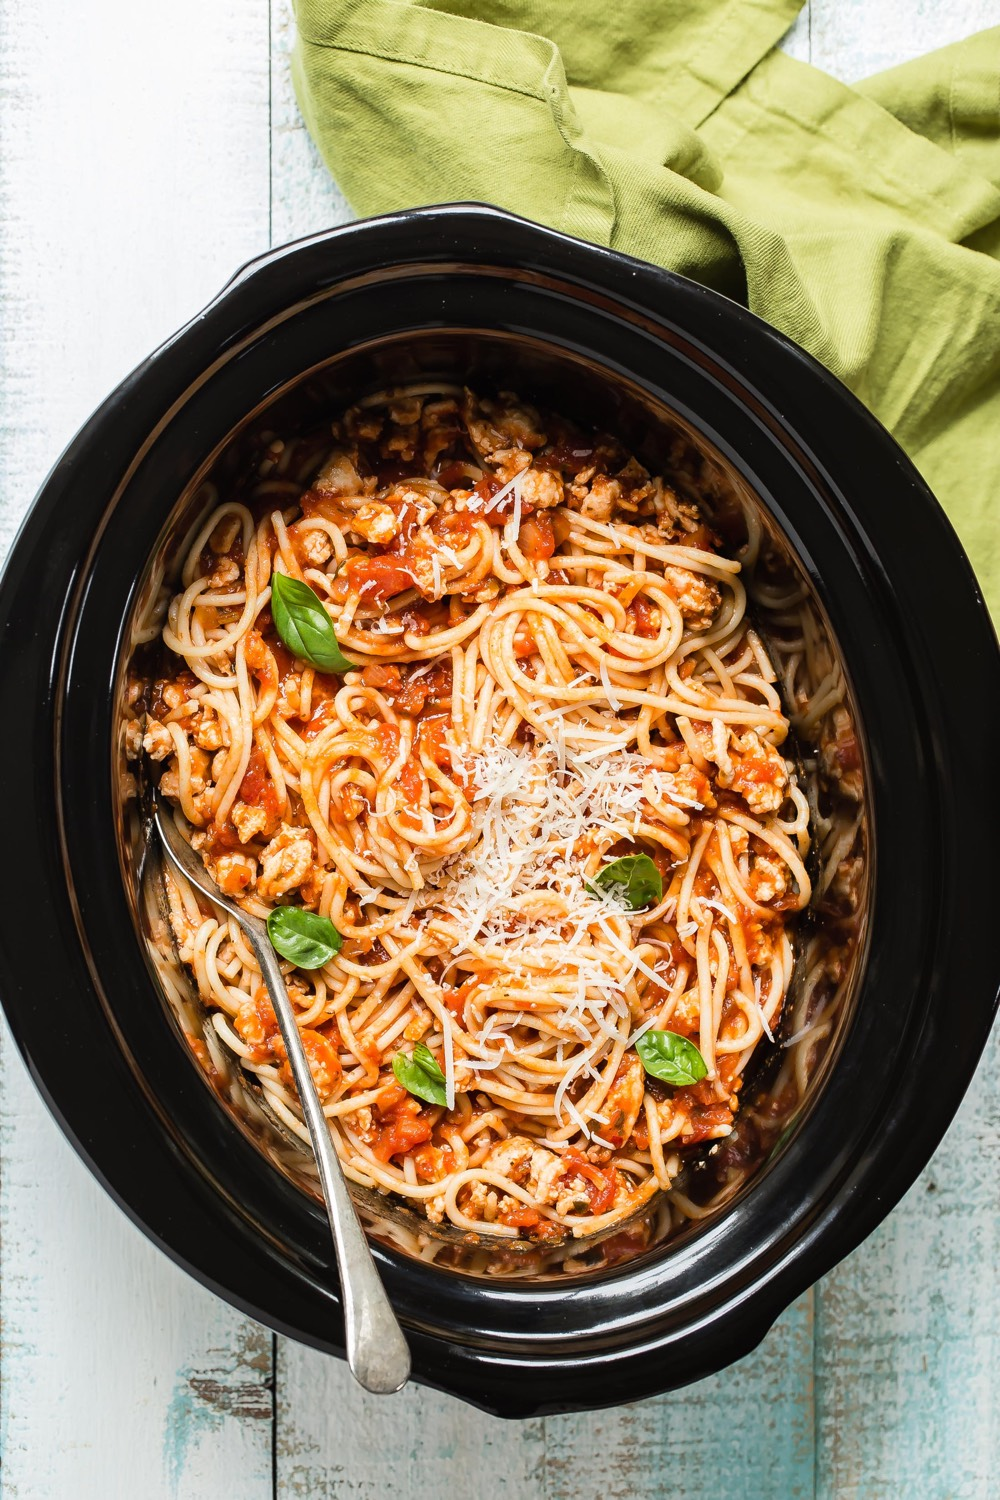 Crock Pot Spaghetti from weelicious.com